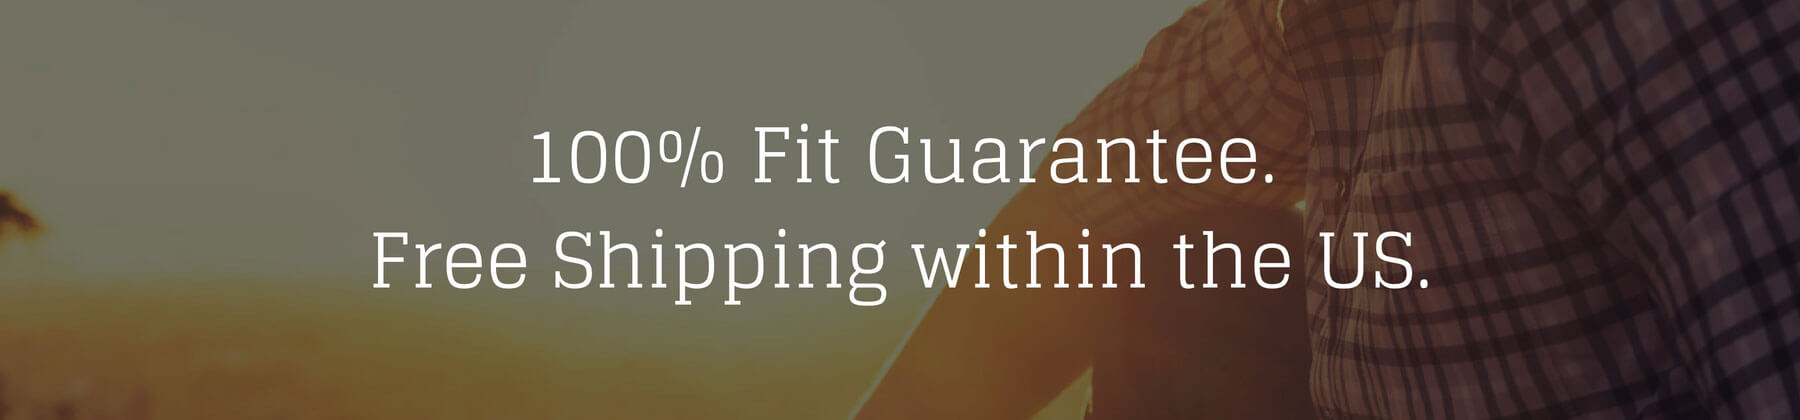 100% Fit Guarantee